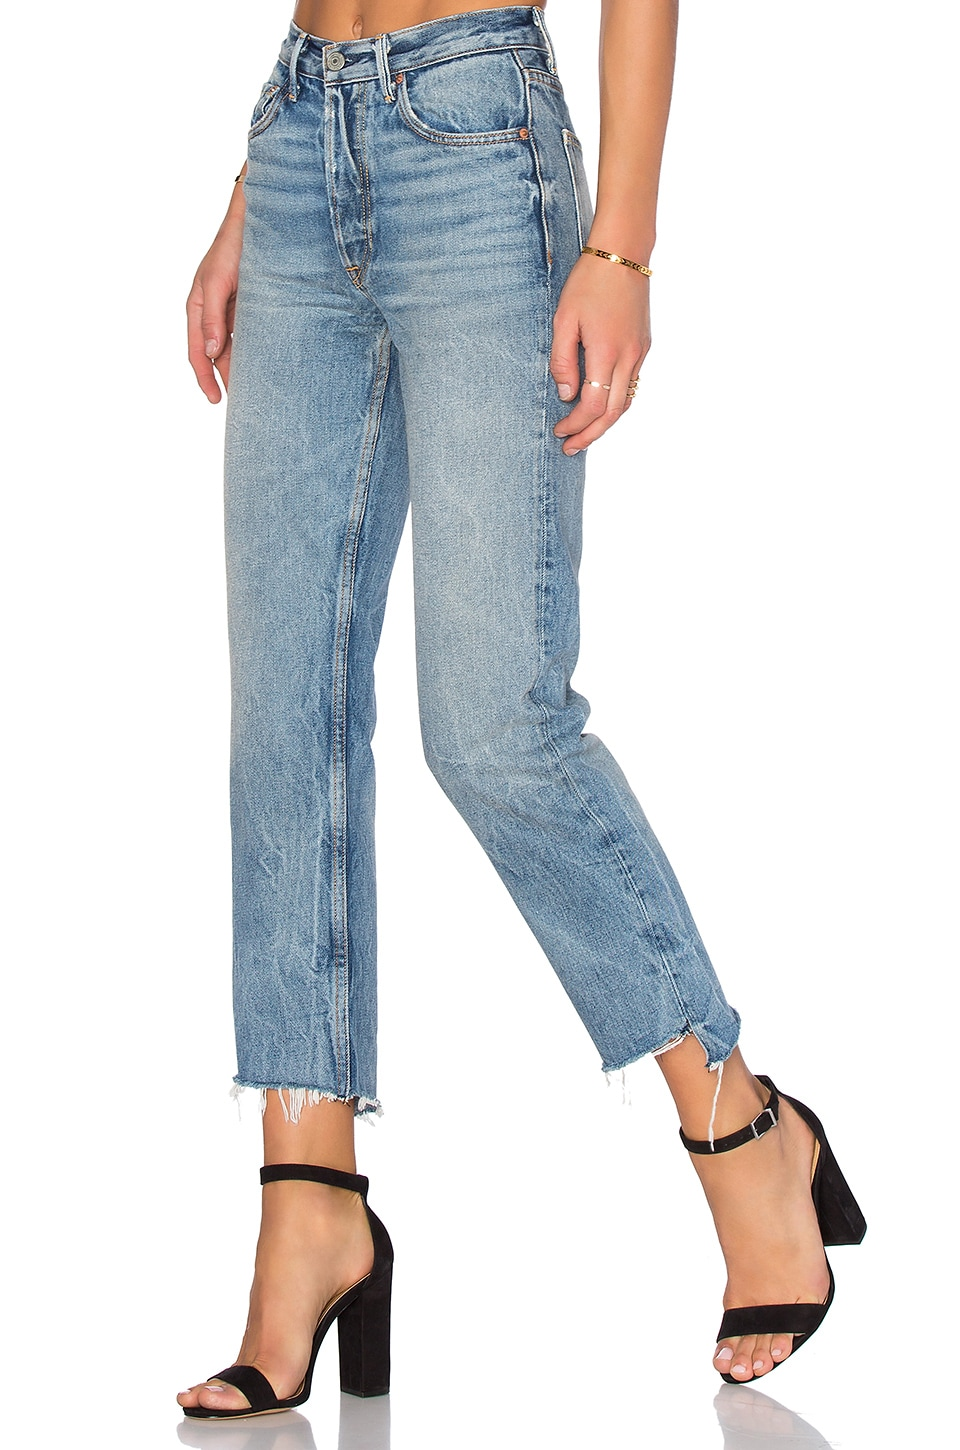 GRLFRND PETITE Helena High-Rise Straight Jean in My Sharona